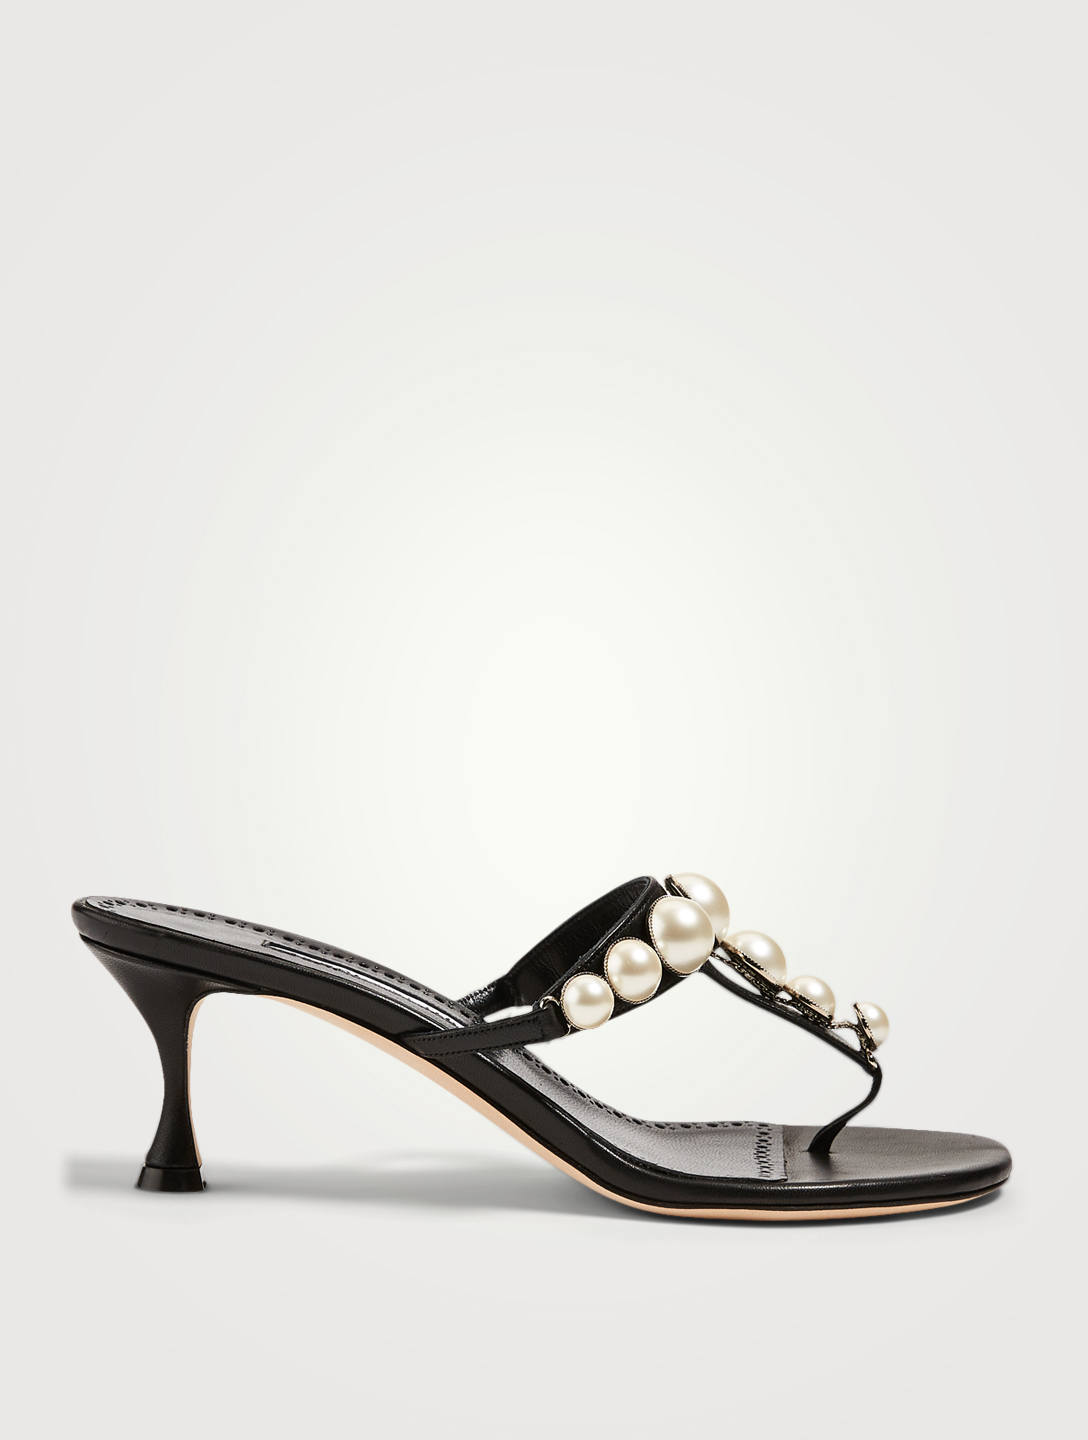 MANOLO BLAHNIK Perlosa Leather Heeled Thong Sandals With Pearls Women's Black